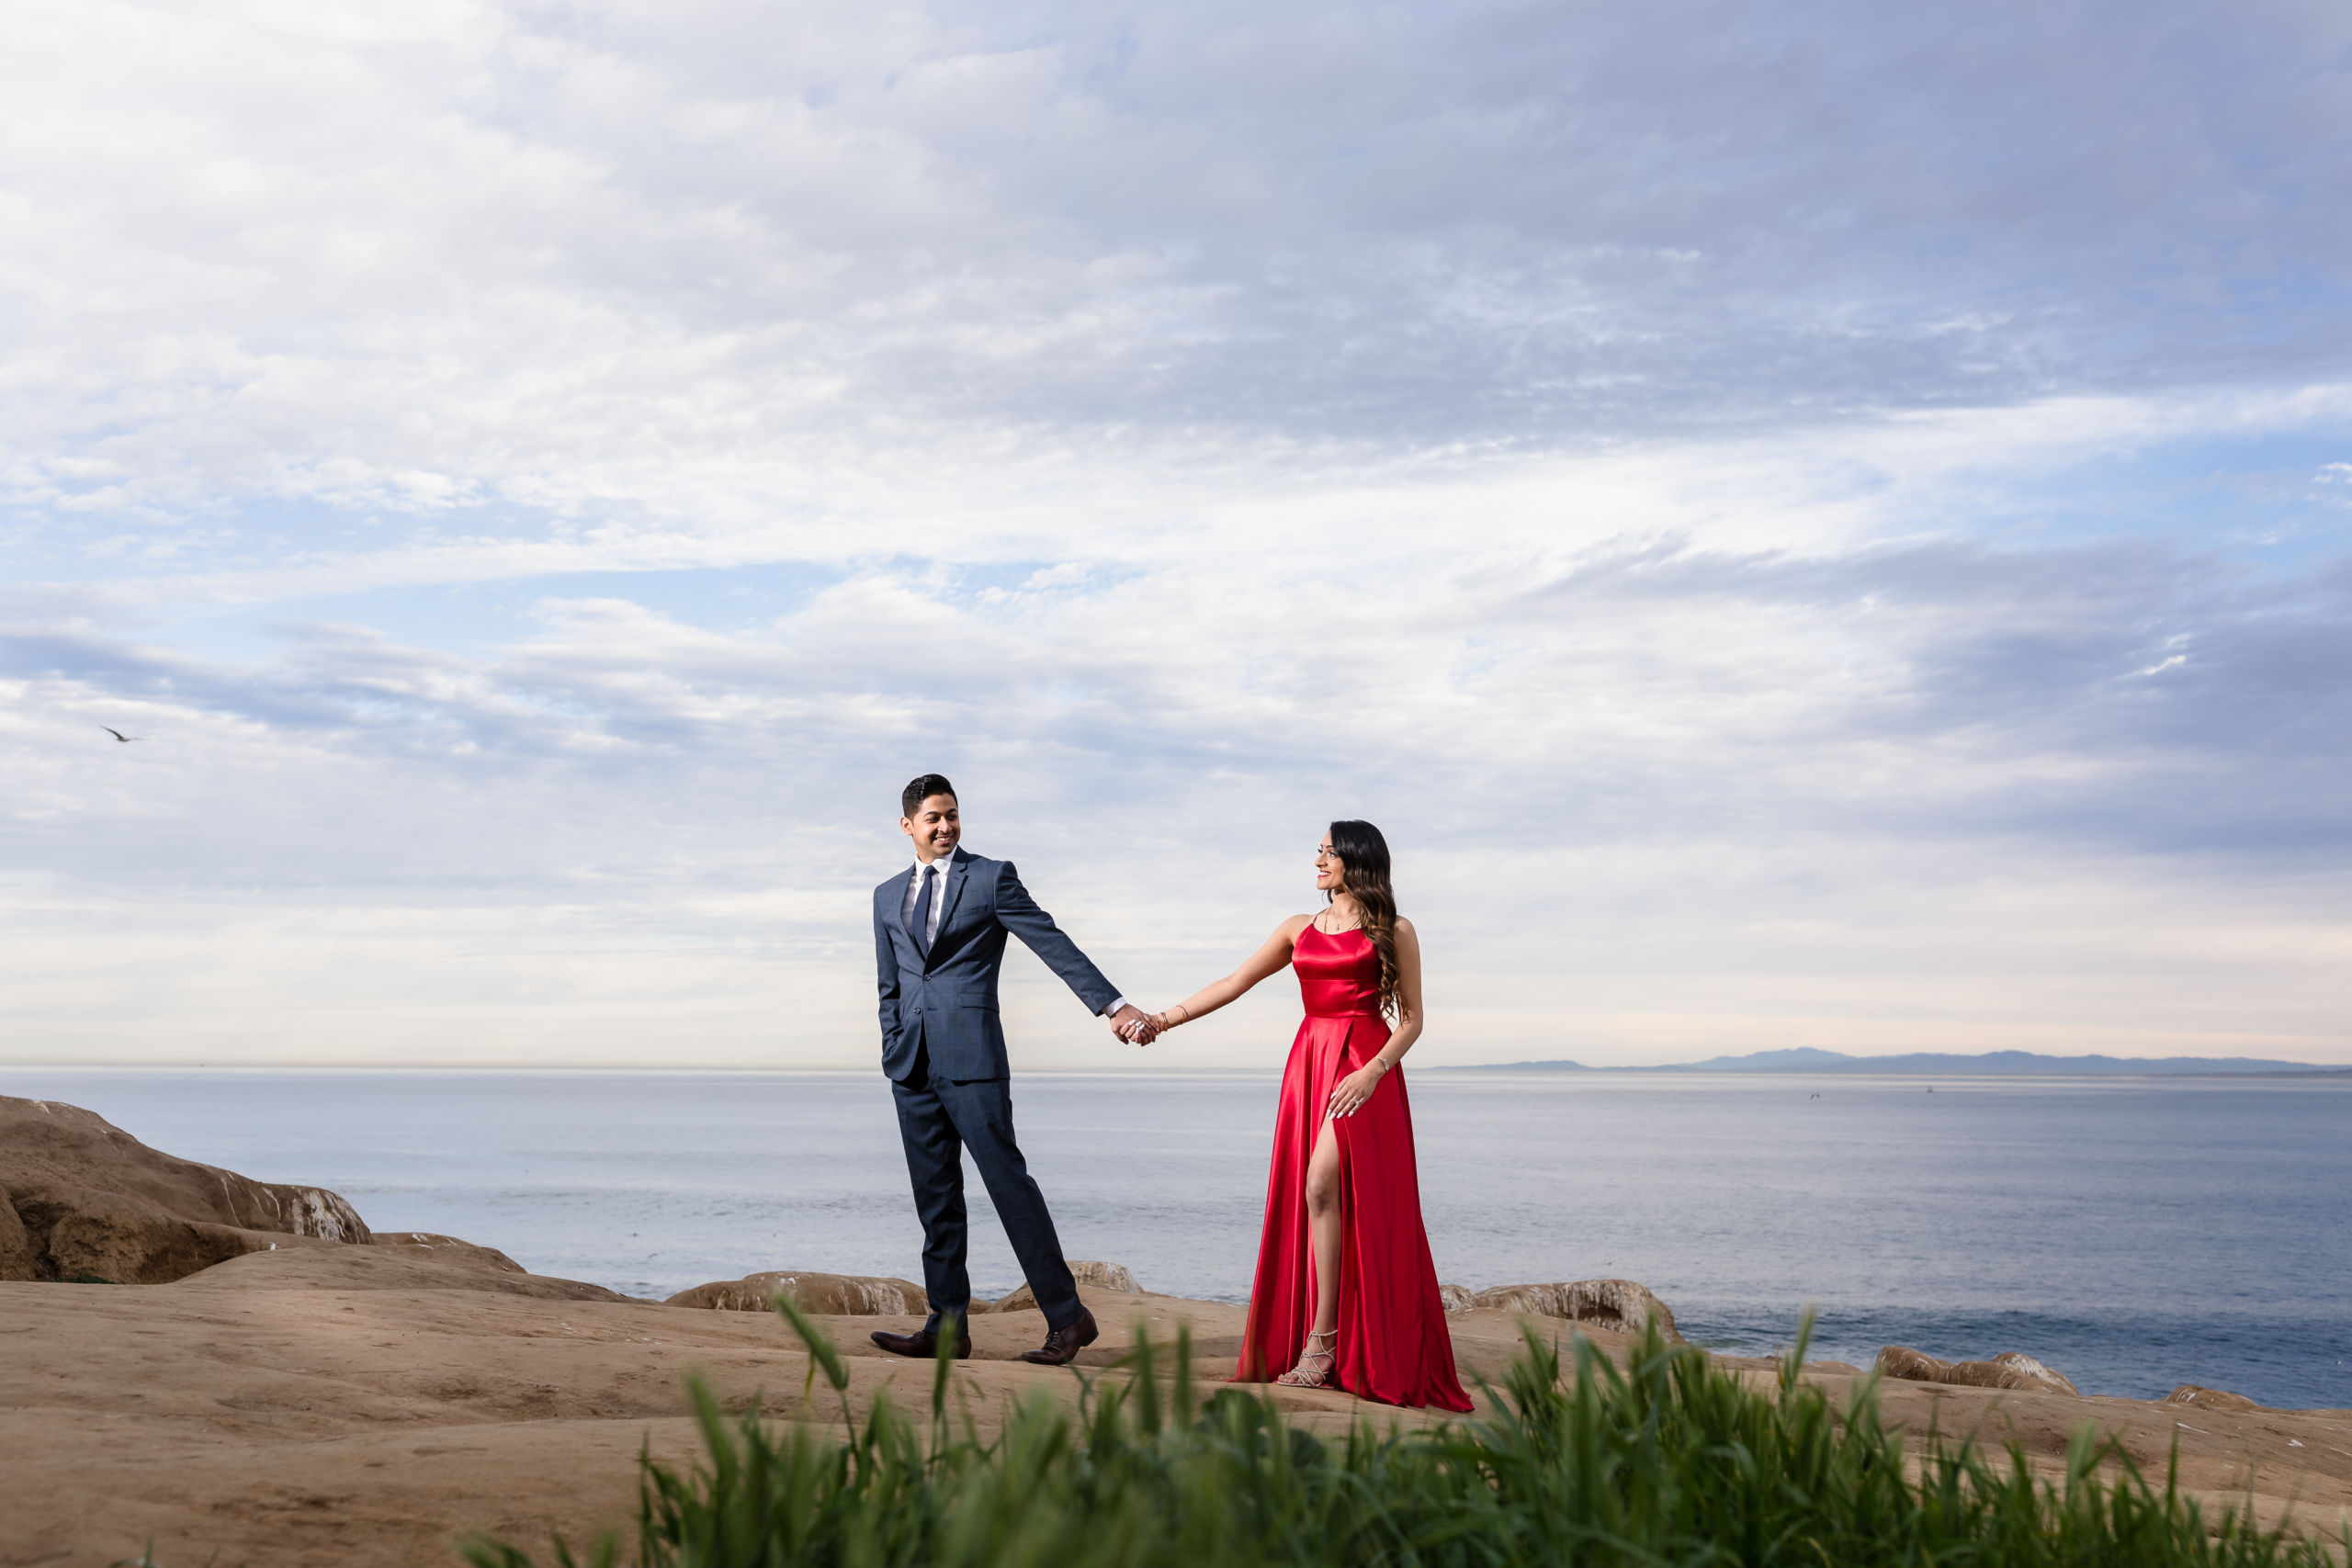 0044 PD La Jolla Cove San Diego County Engagement Photography